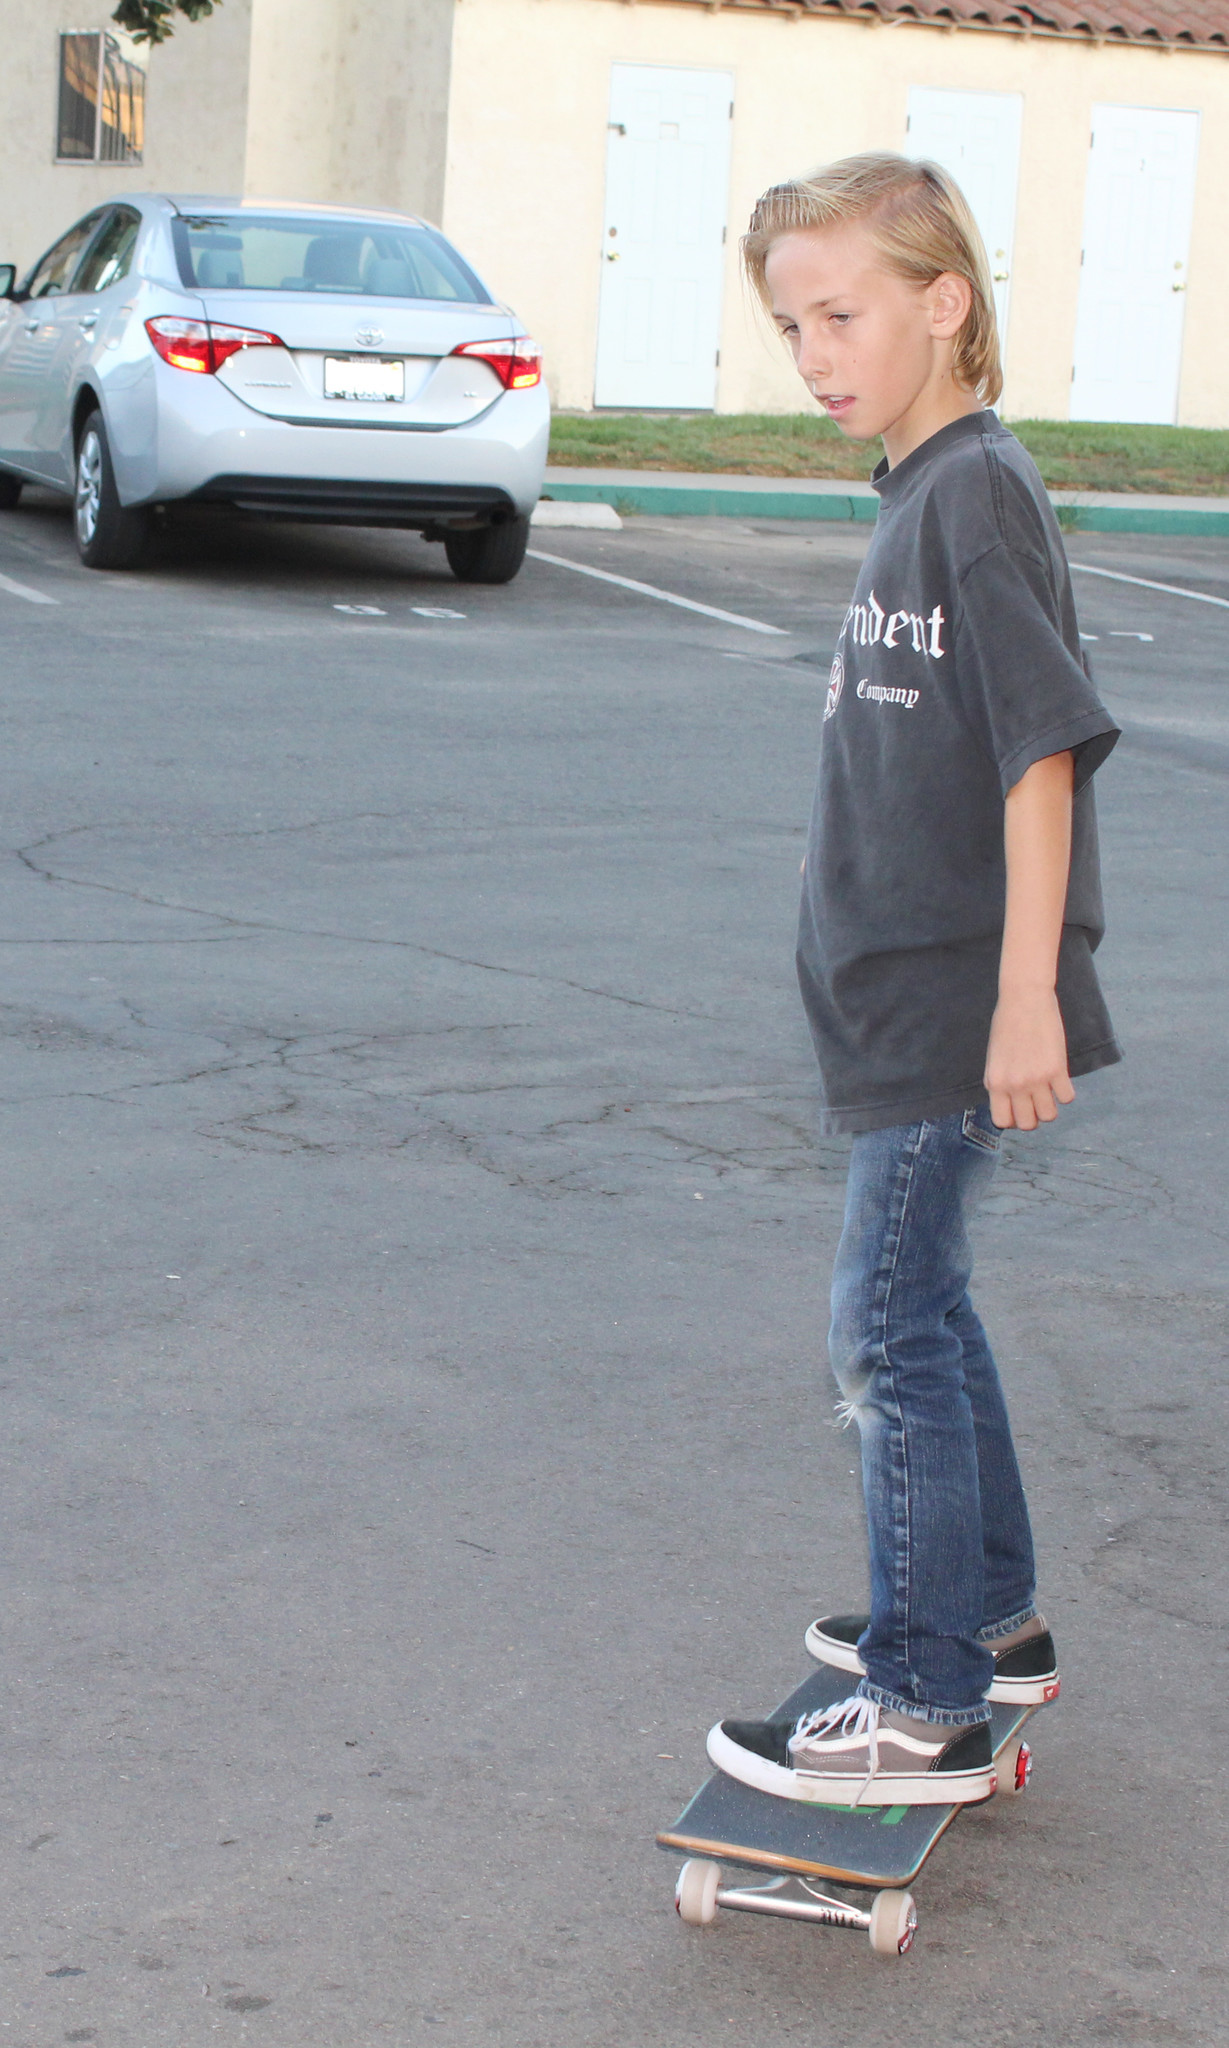 Andrew Hitt tries out his new skateboard.